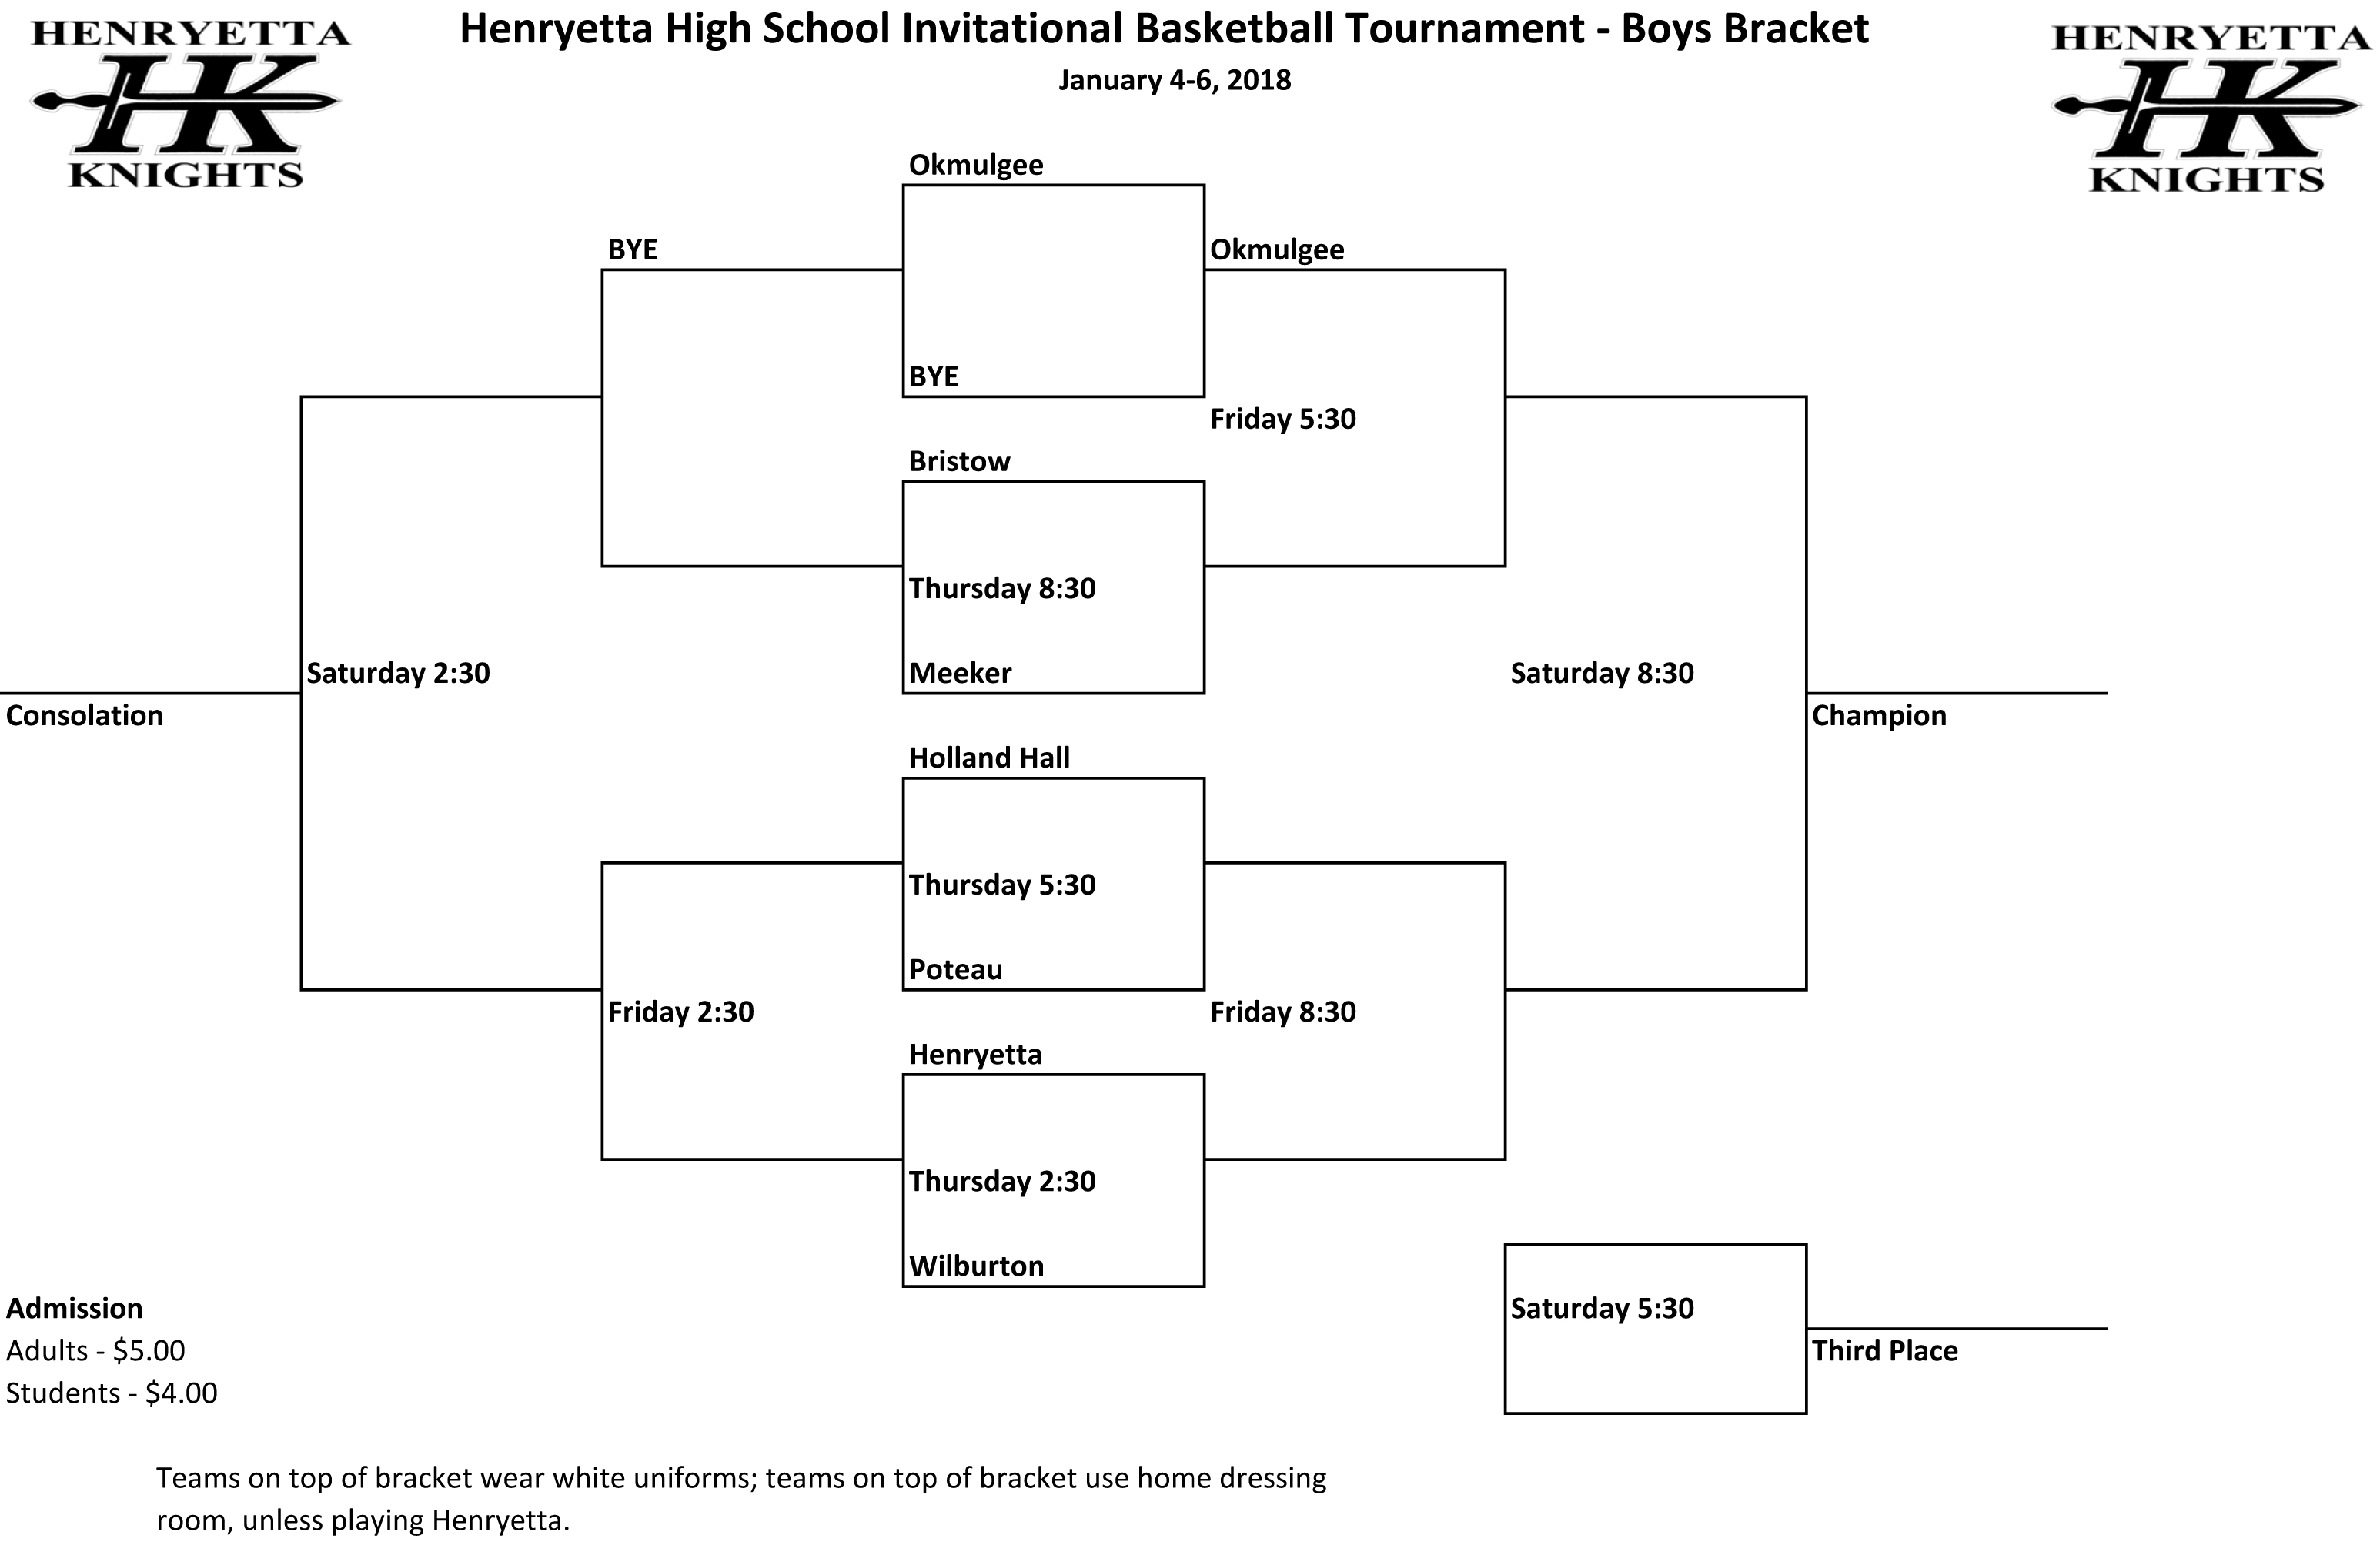 BB HSBoysBracket